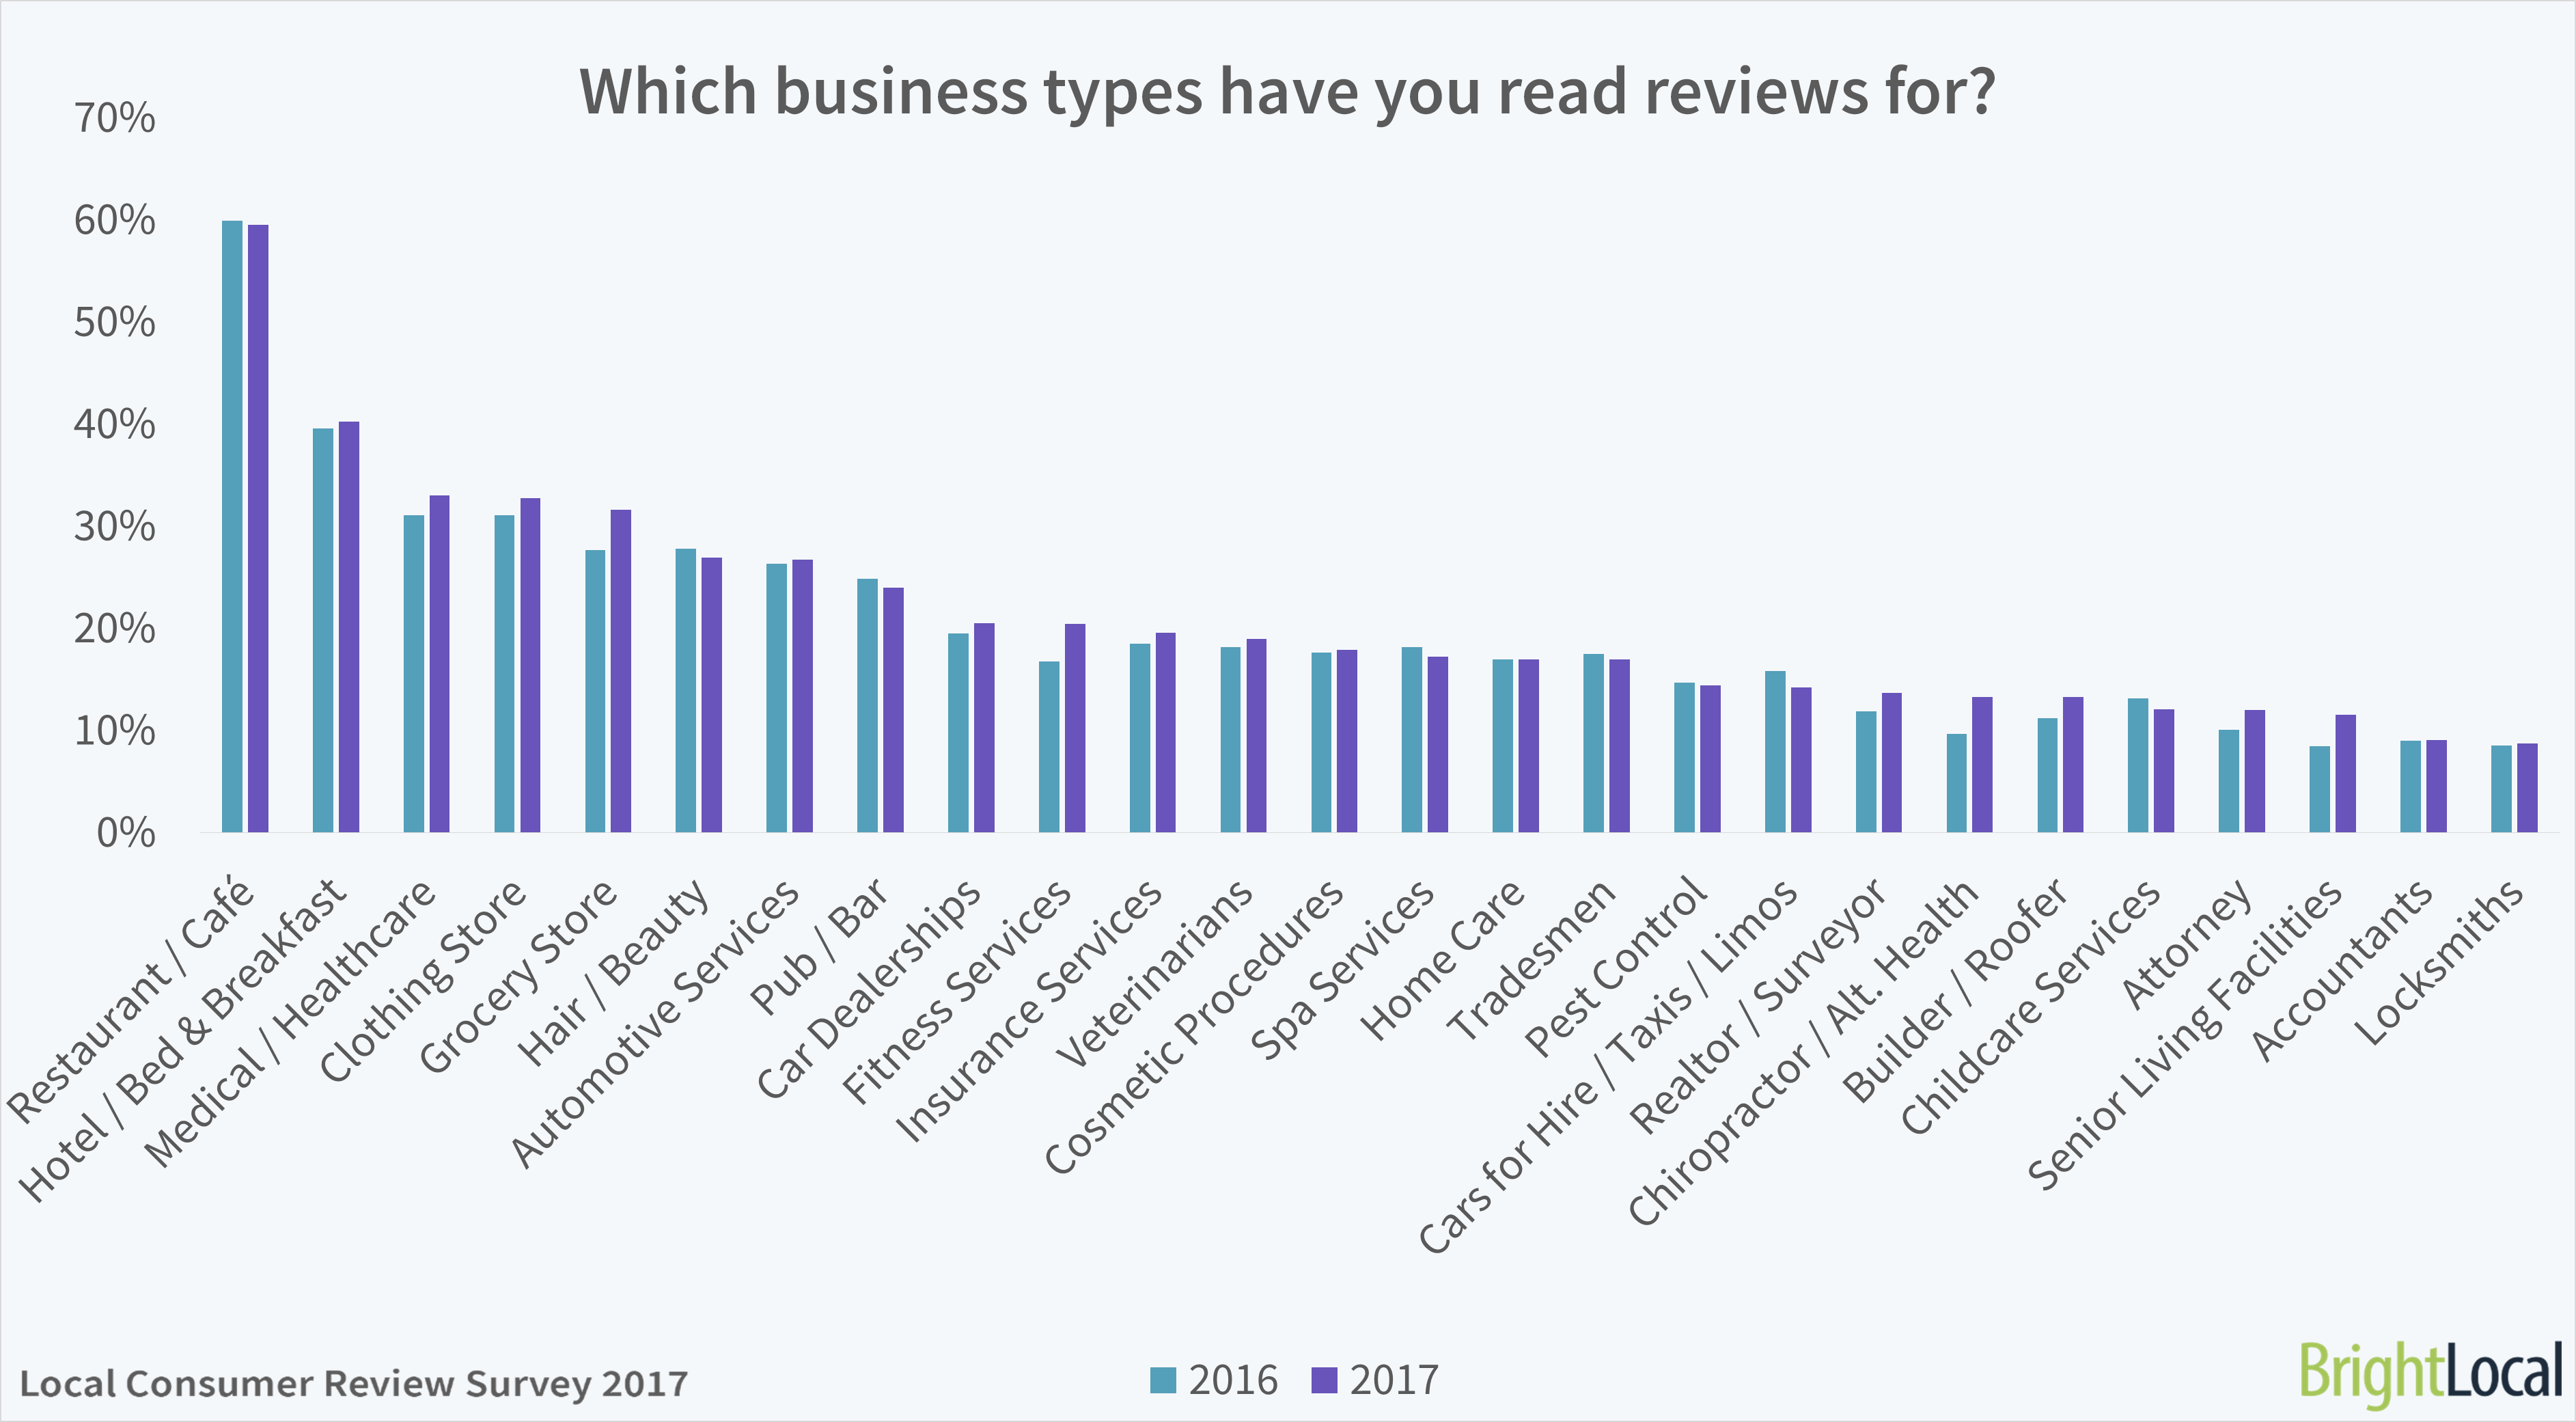 Which business types have you read reviews for? BrightLocal Consumer Review Survey 2017